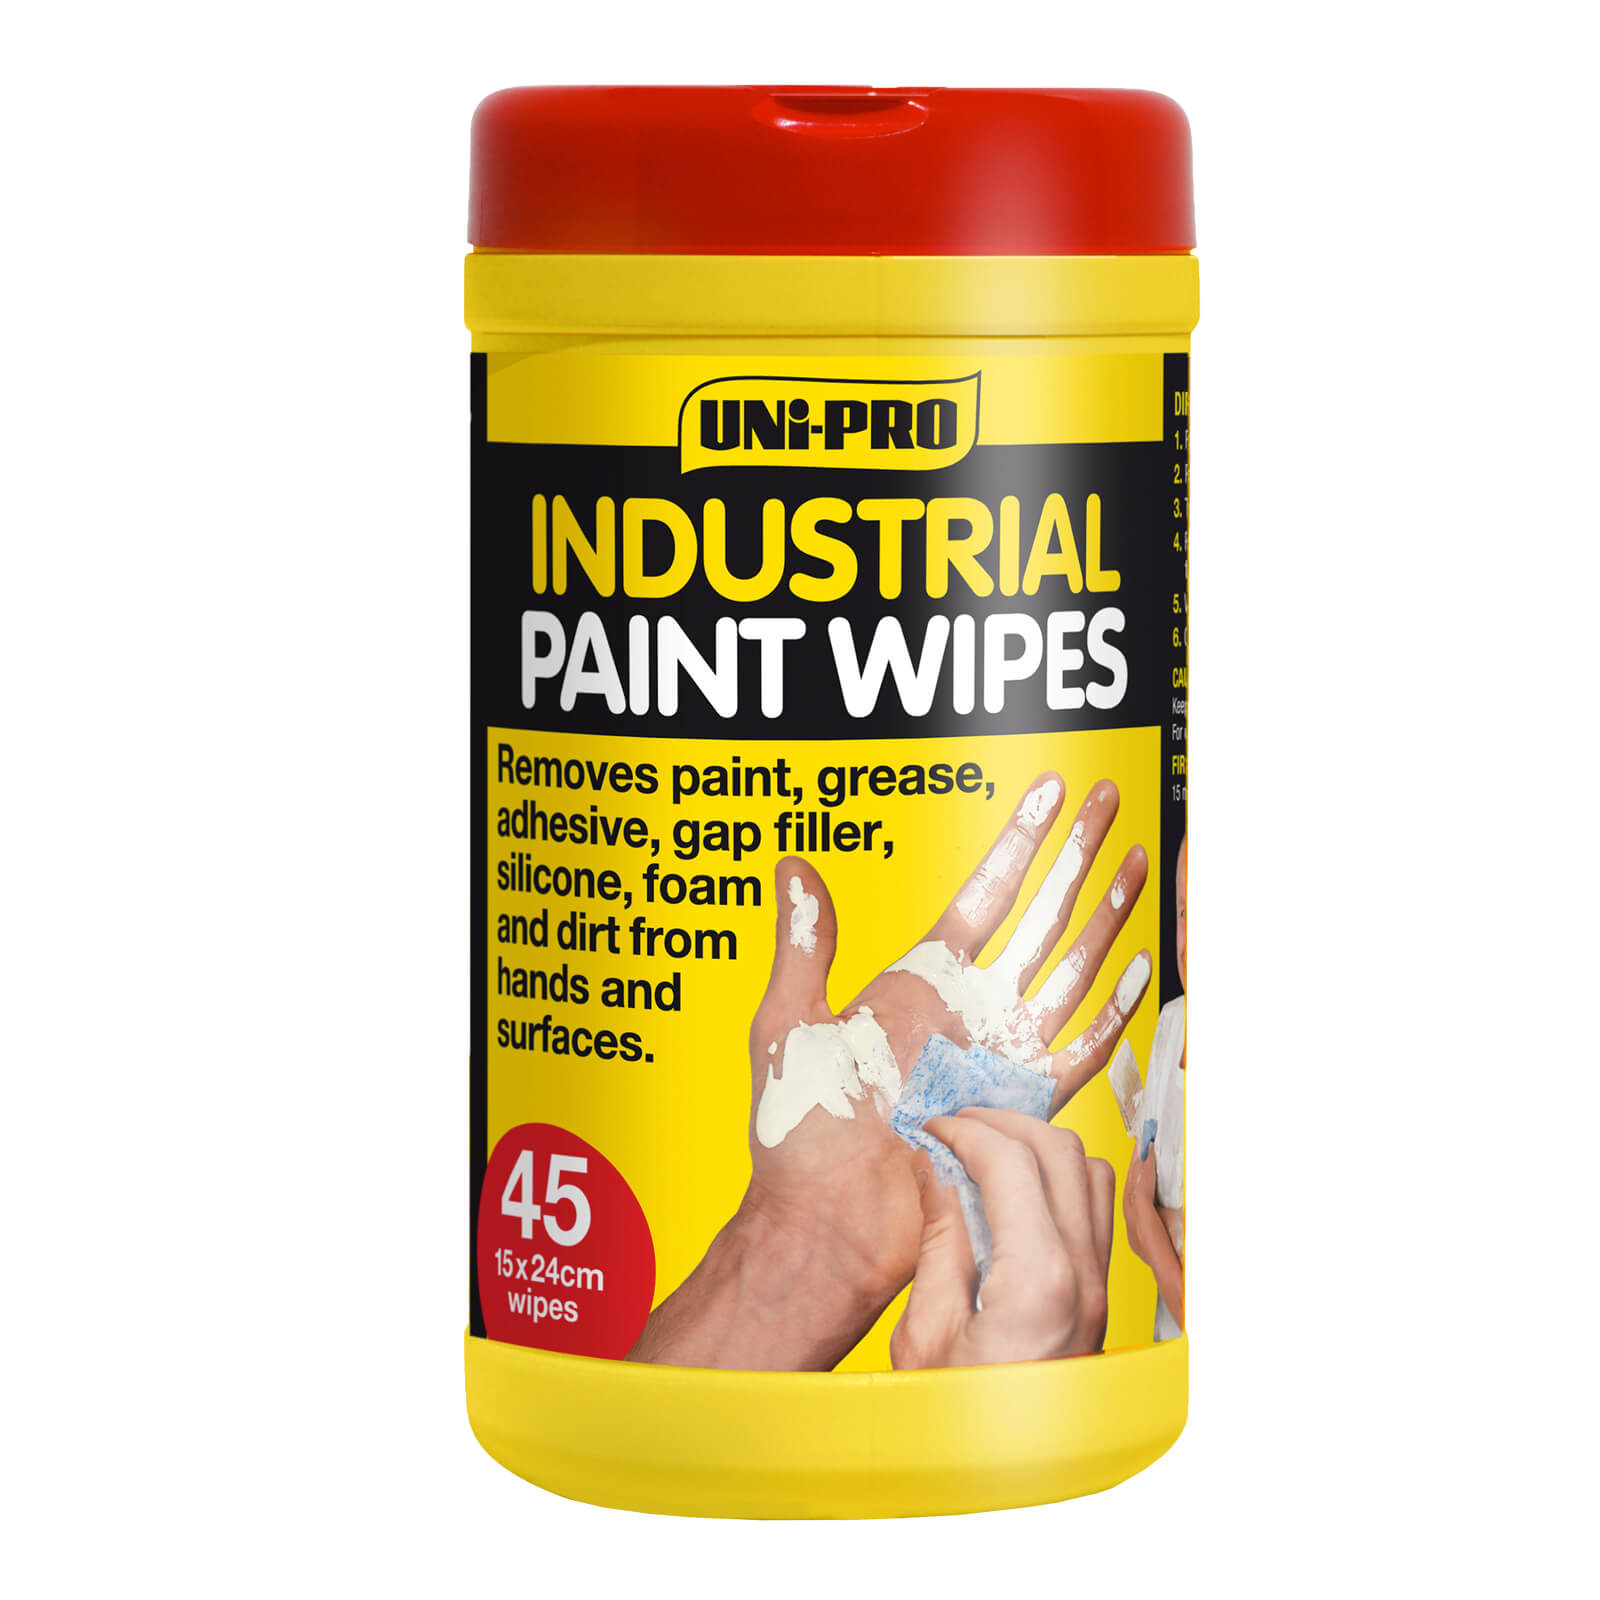 UNi-PRO Industrial Paint Hand Wipes